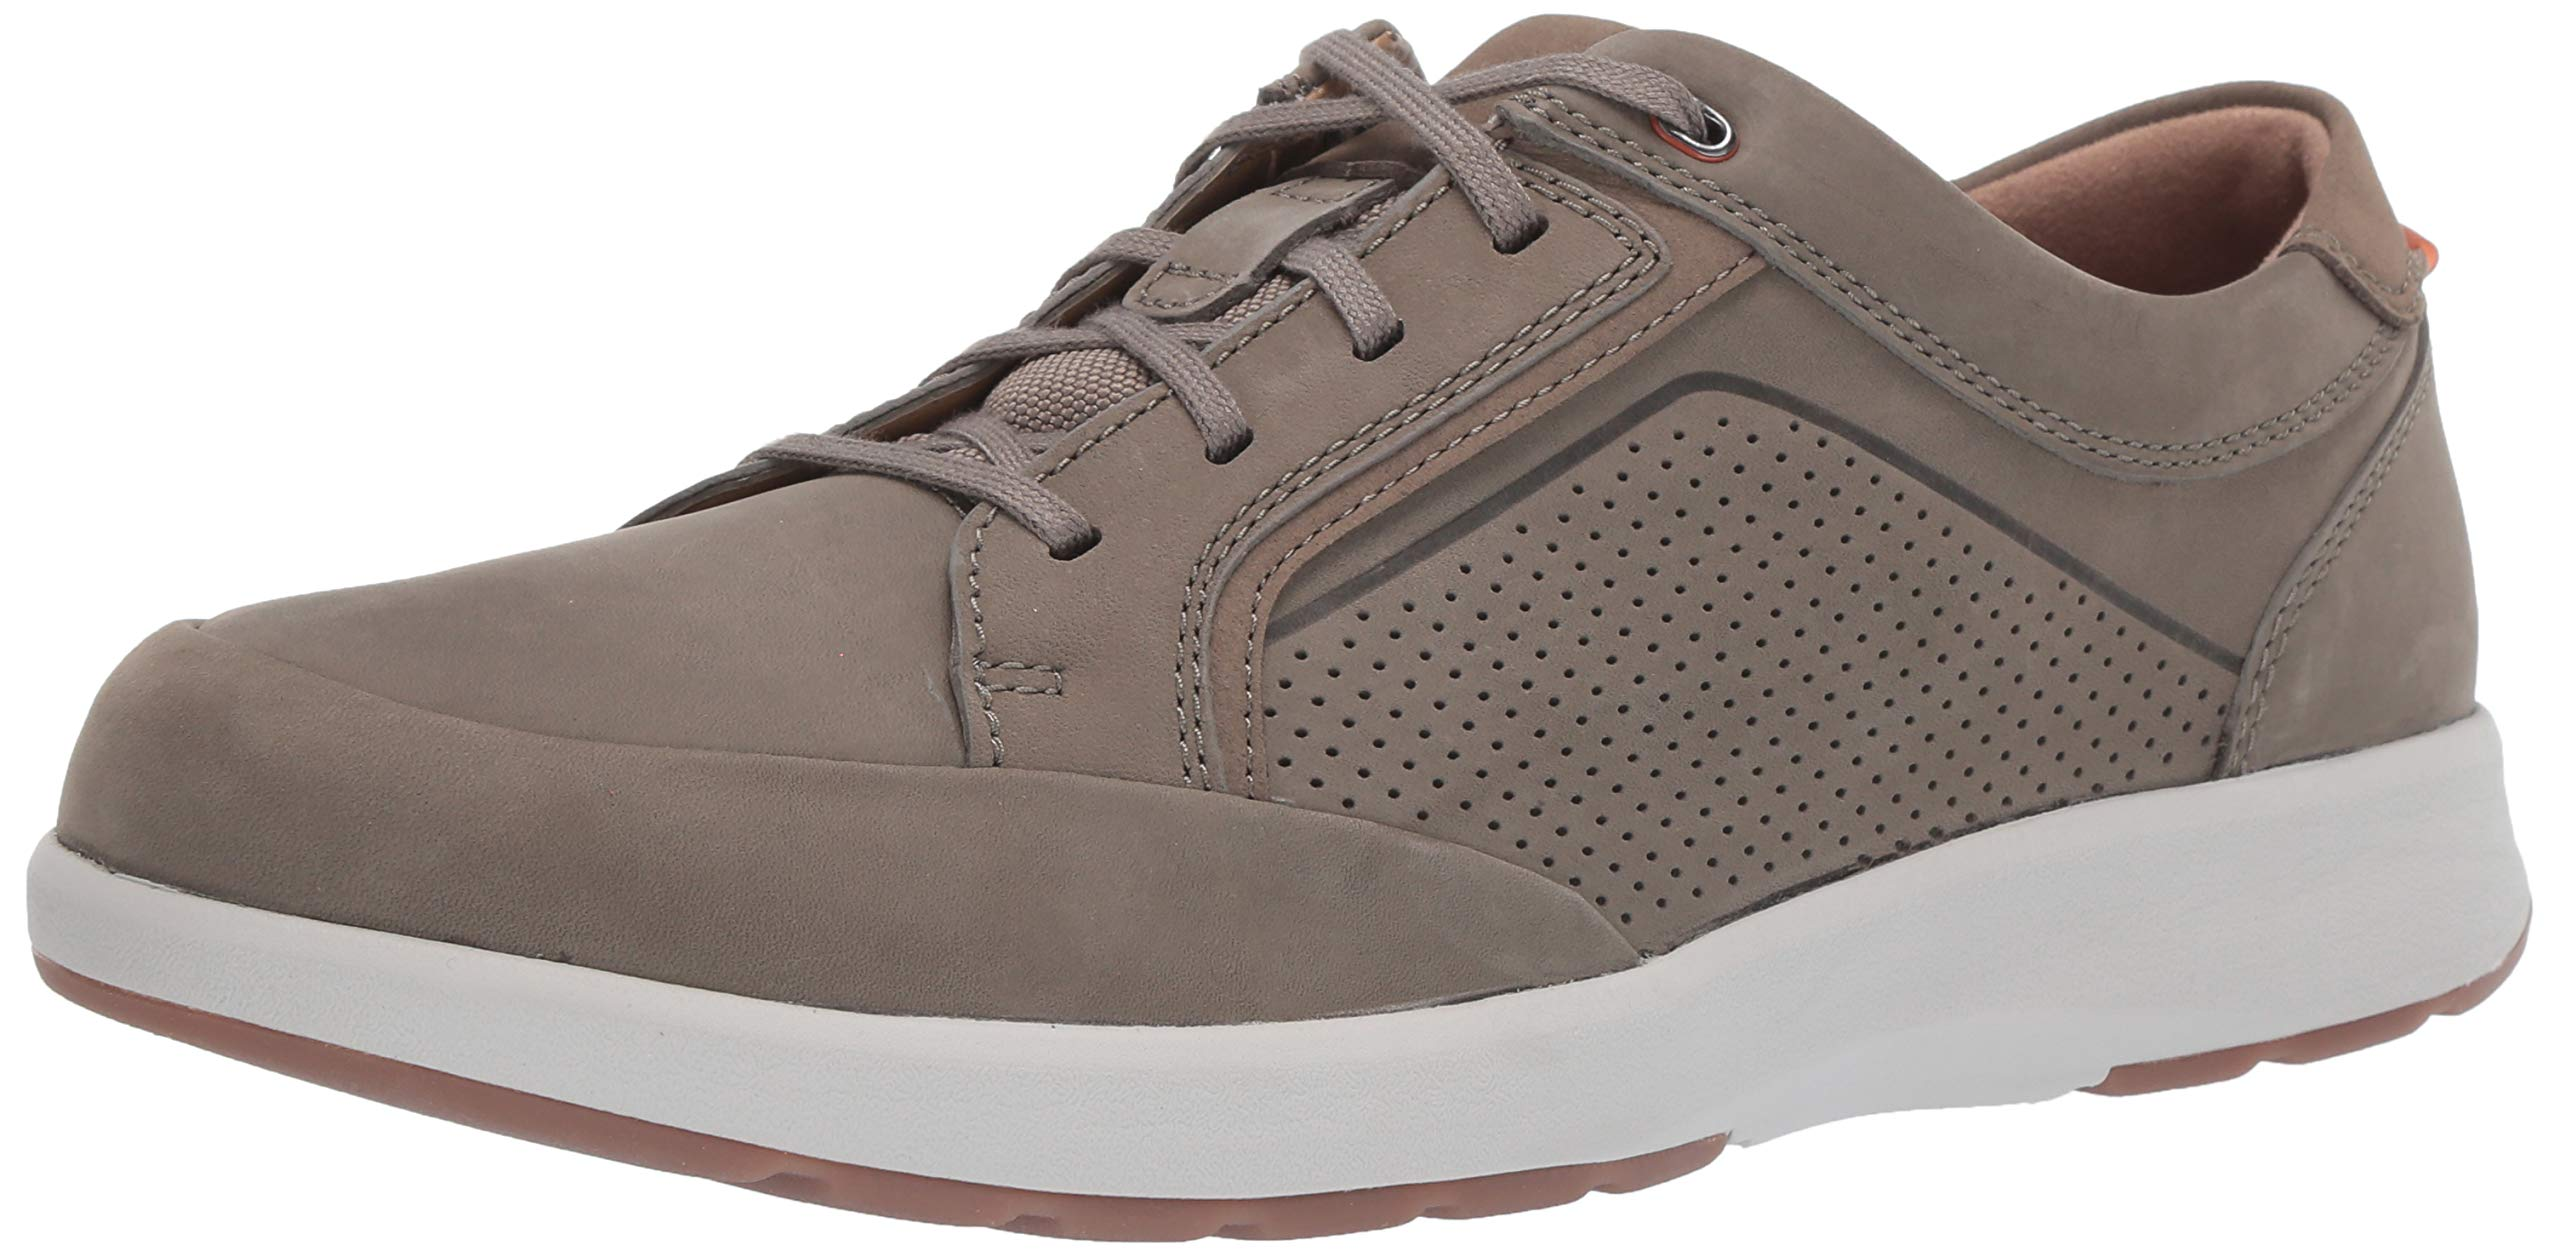 CLARKS Men's Un Trail Form Sneaker, Taupe Nubuck, 90 W US by CLARKS